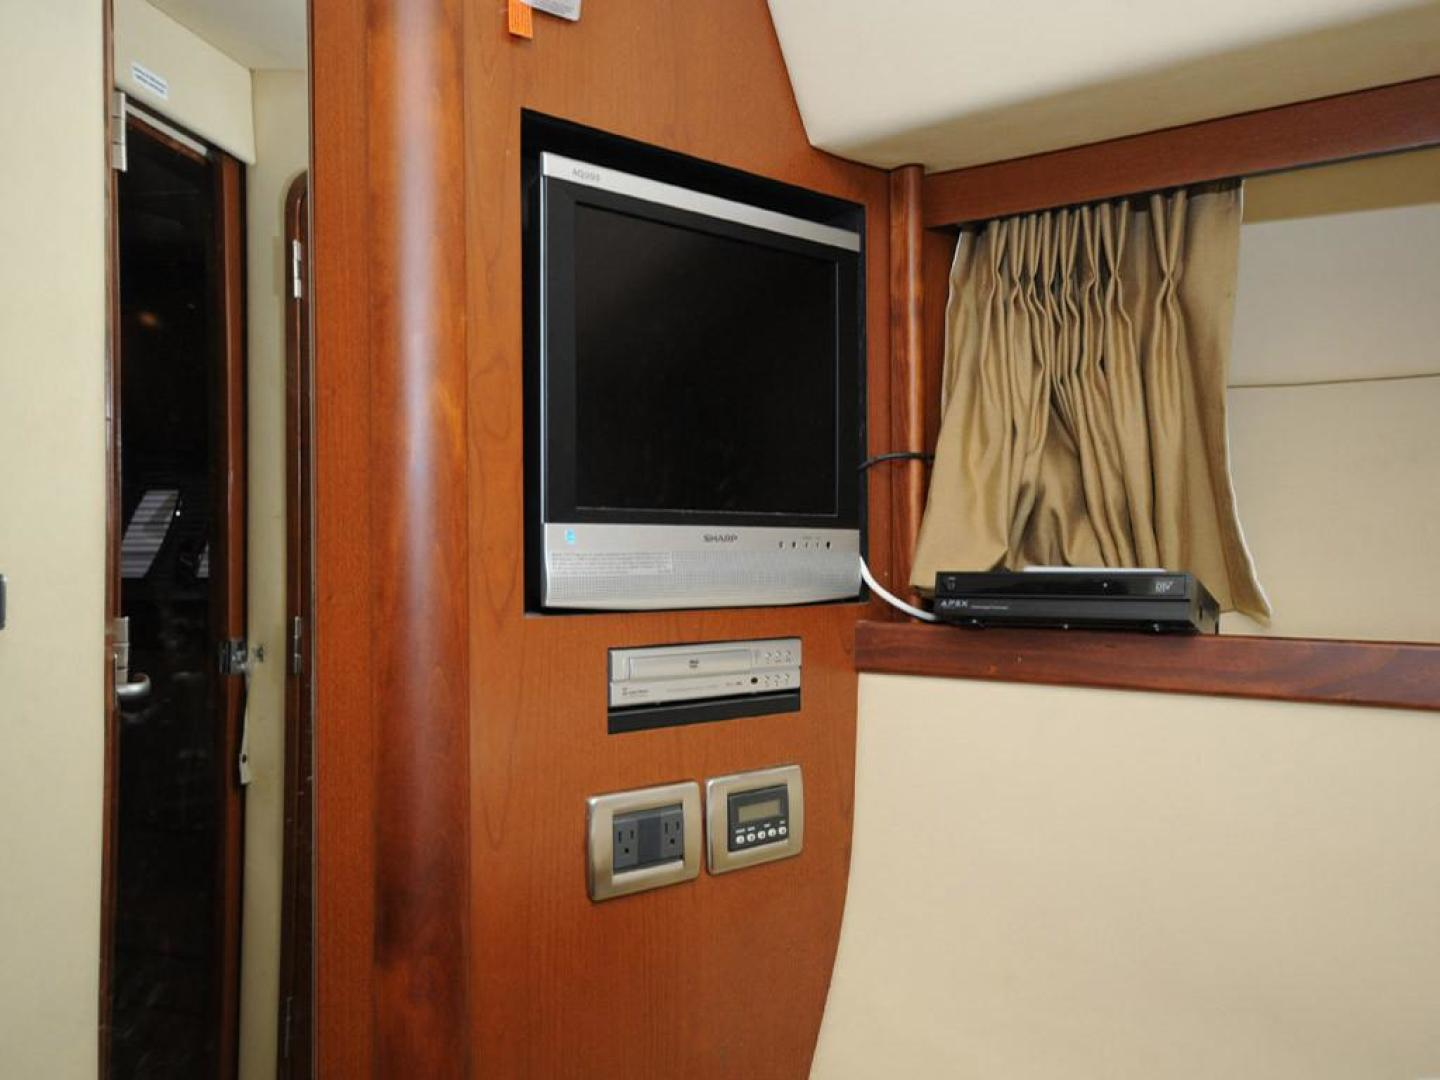 Sea Ray-38 Sundancer 2007-El Don North Beach-Maryland-United States-Master Stateroom Port Side TV-923264 | Thumbnail